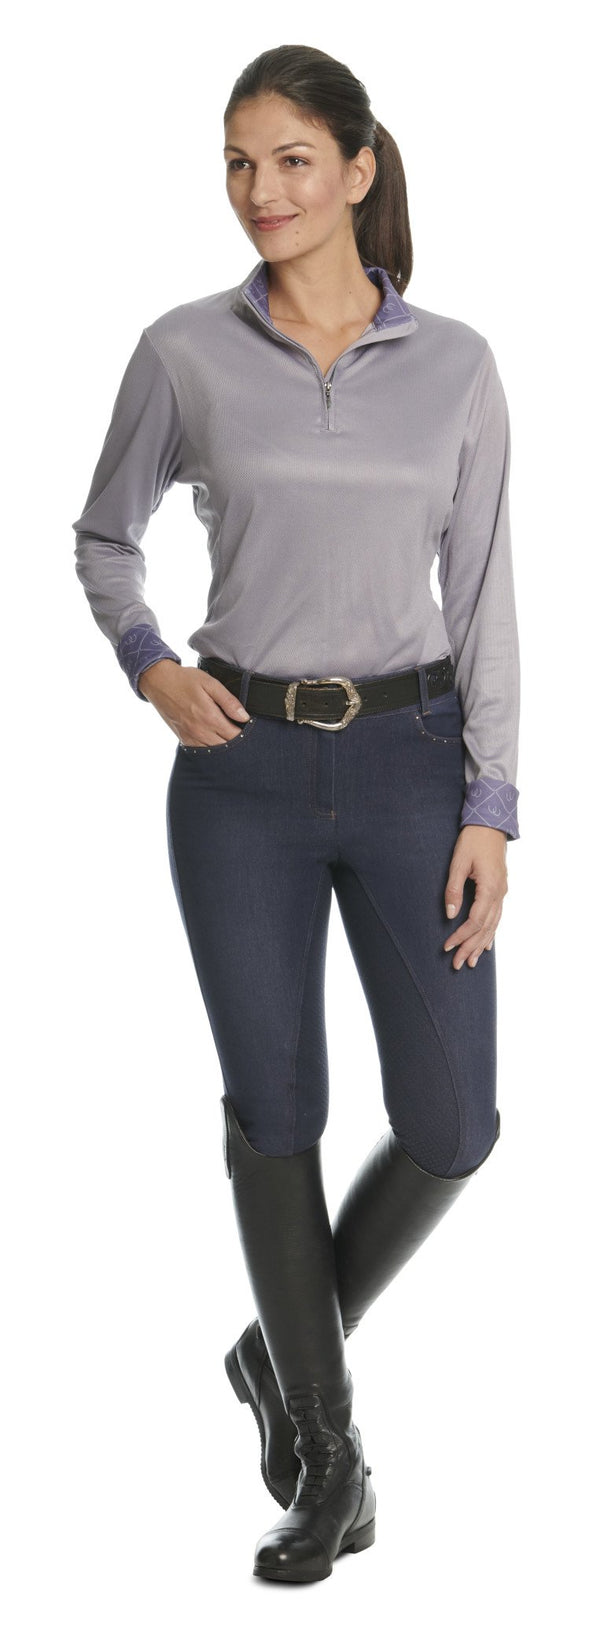 Ovation Ladies Sienna DTX GRIP Full Seat Breeches